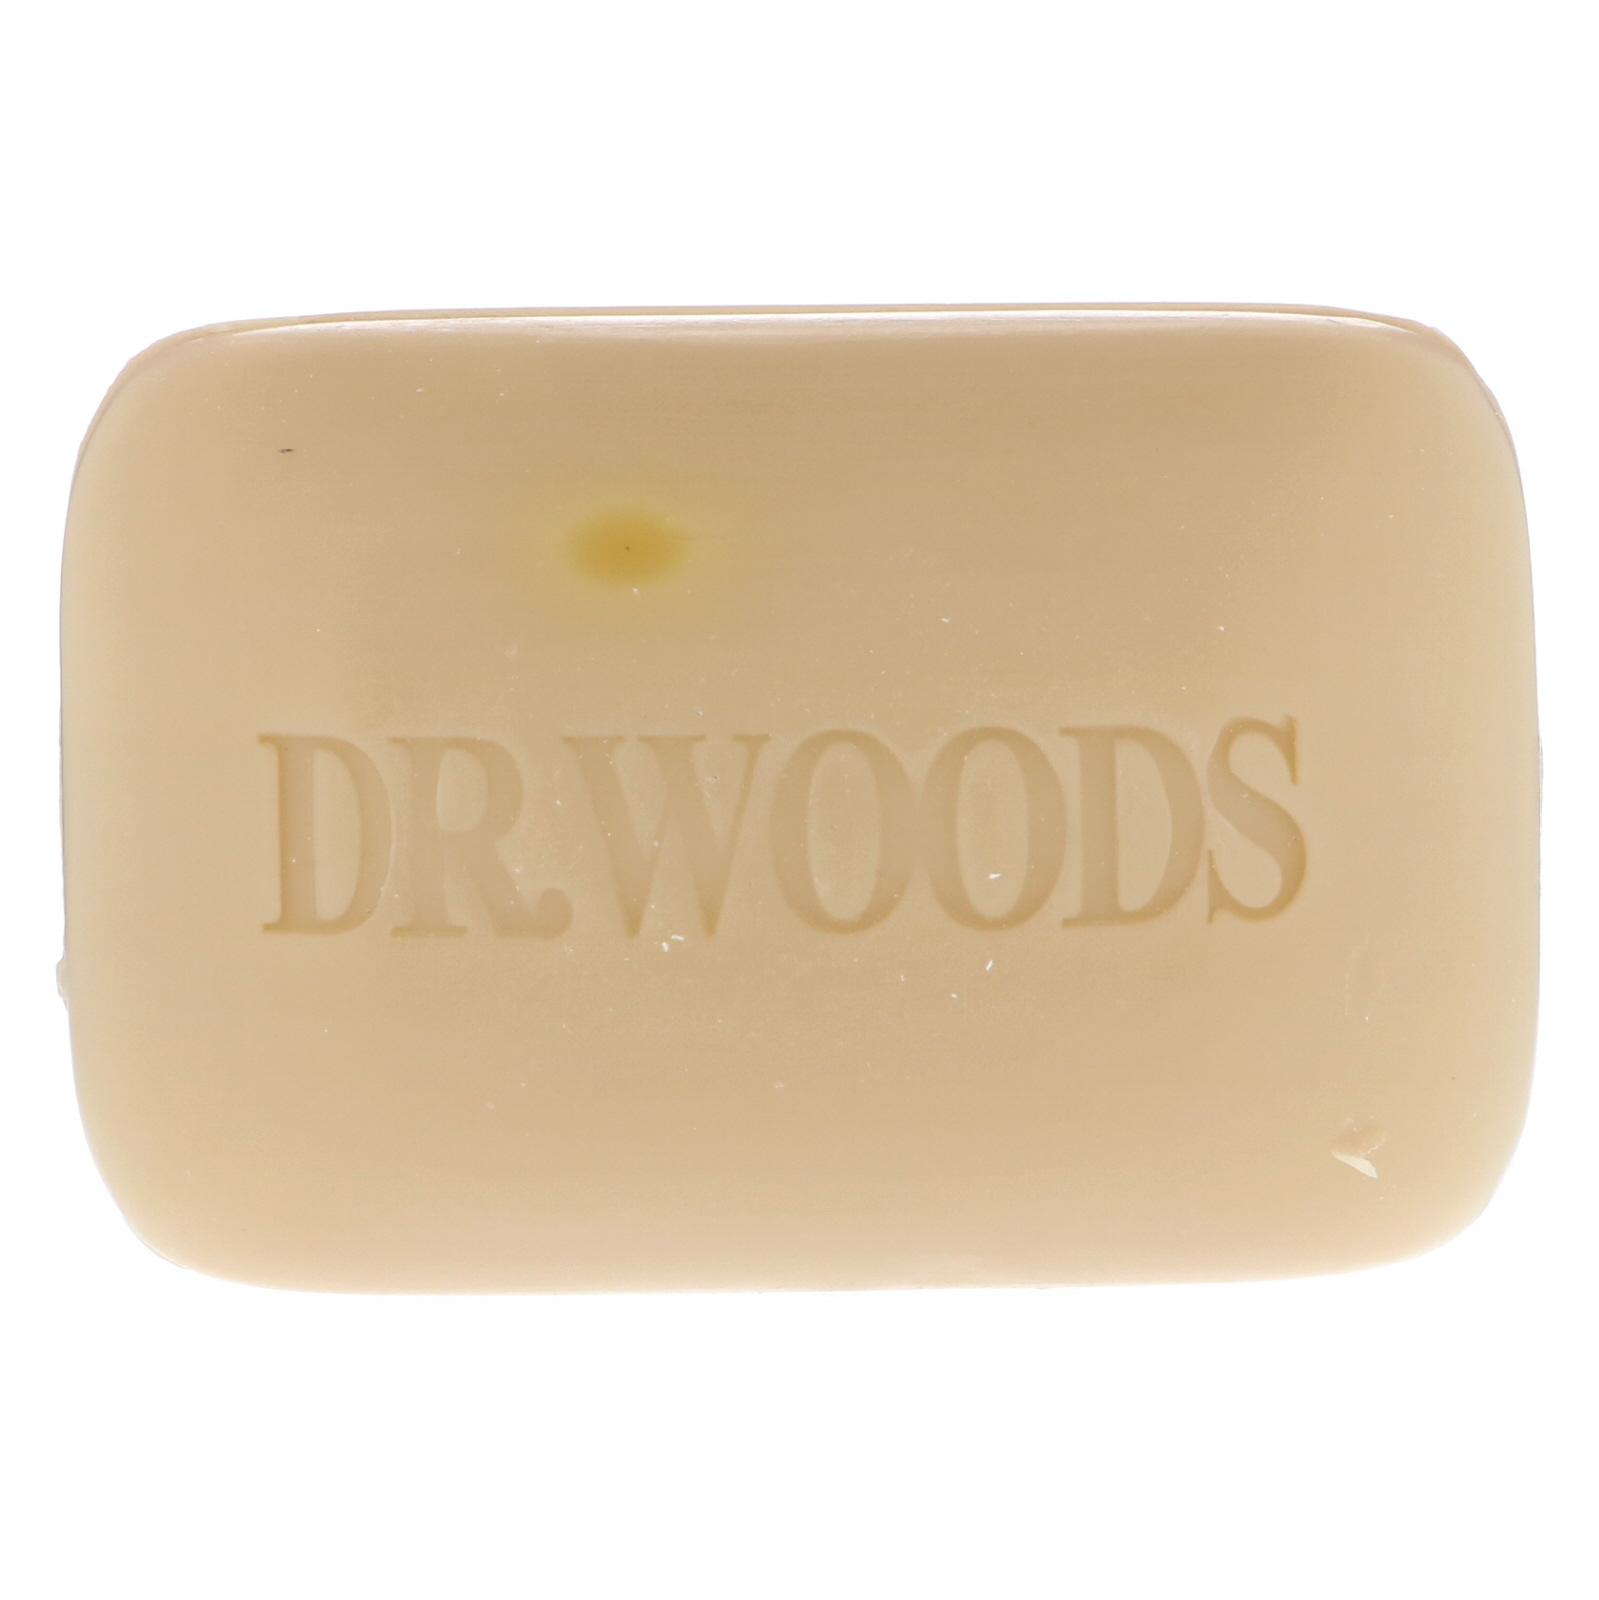 Dr Woods Raw Black Soap Facial Cleansing Bar 5 25 Oz